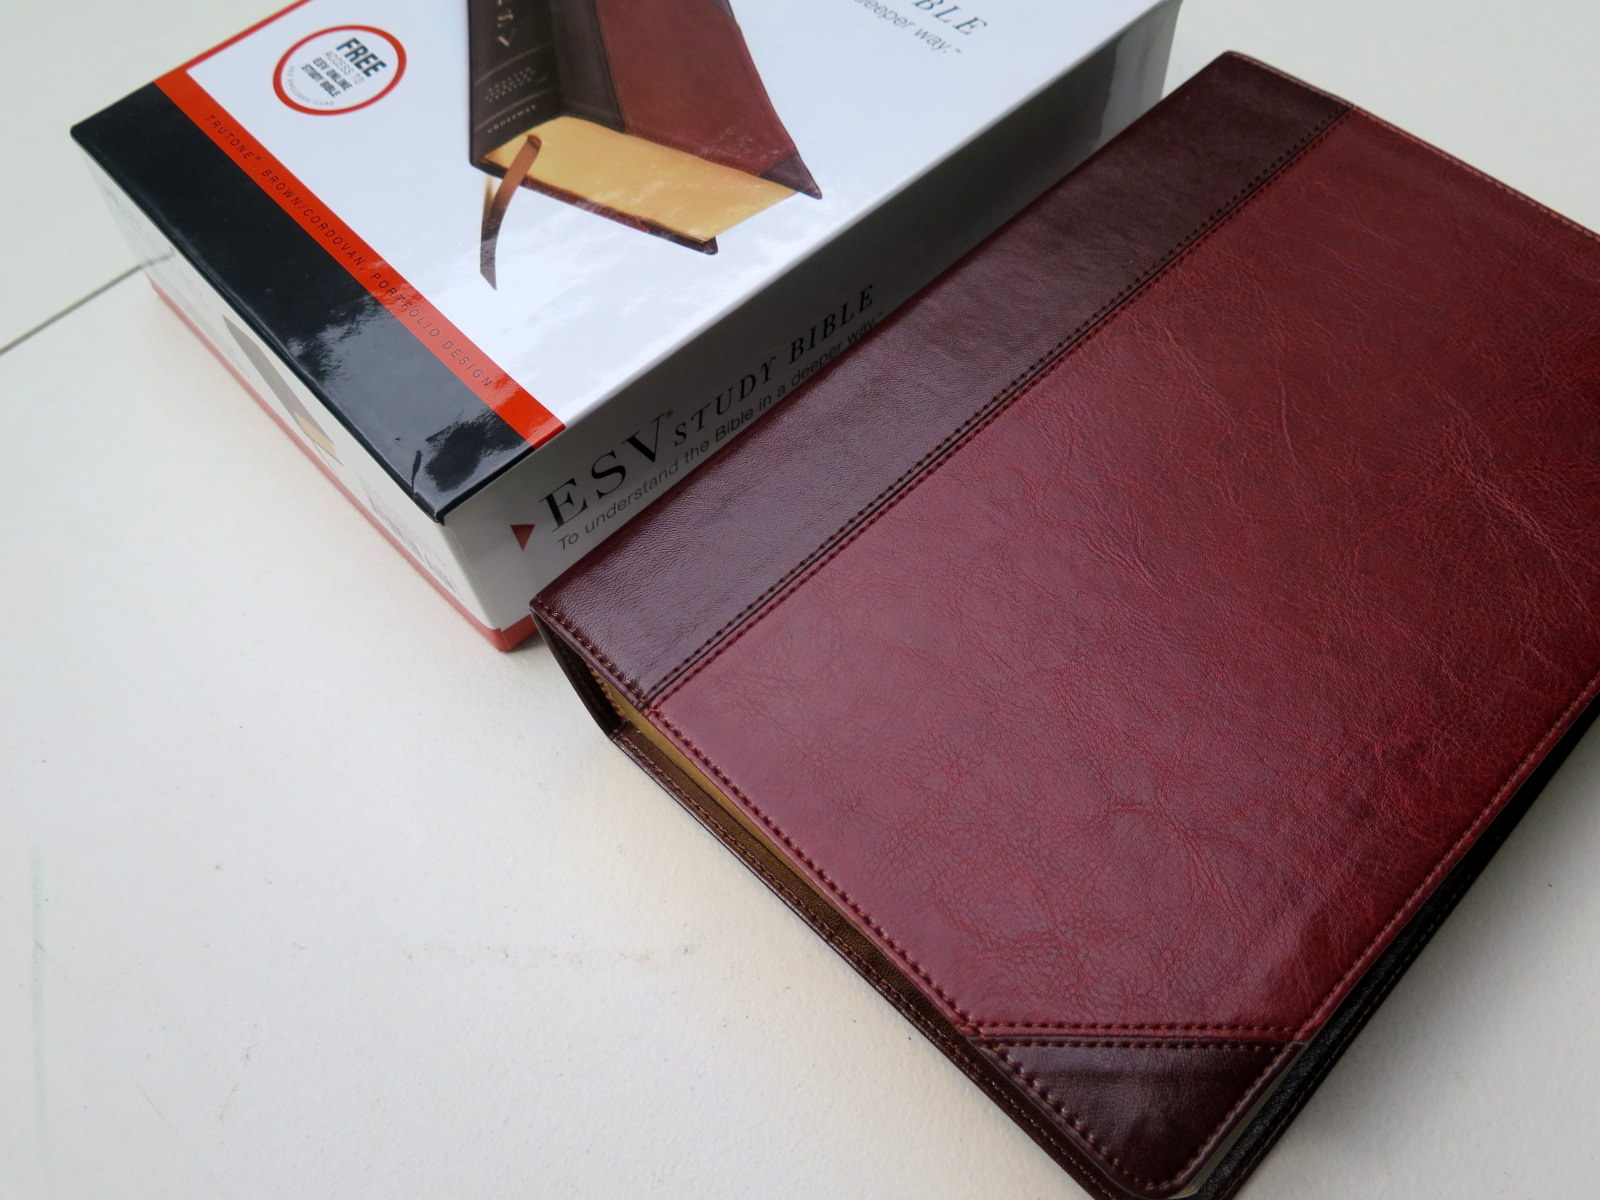 ESV Study Bible (Brown, Flap with Strap) Natural Leather ...